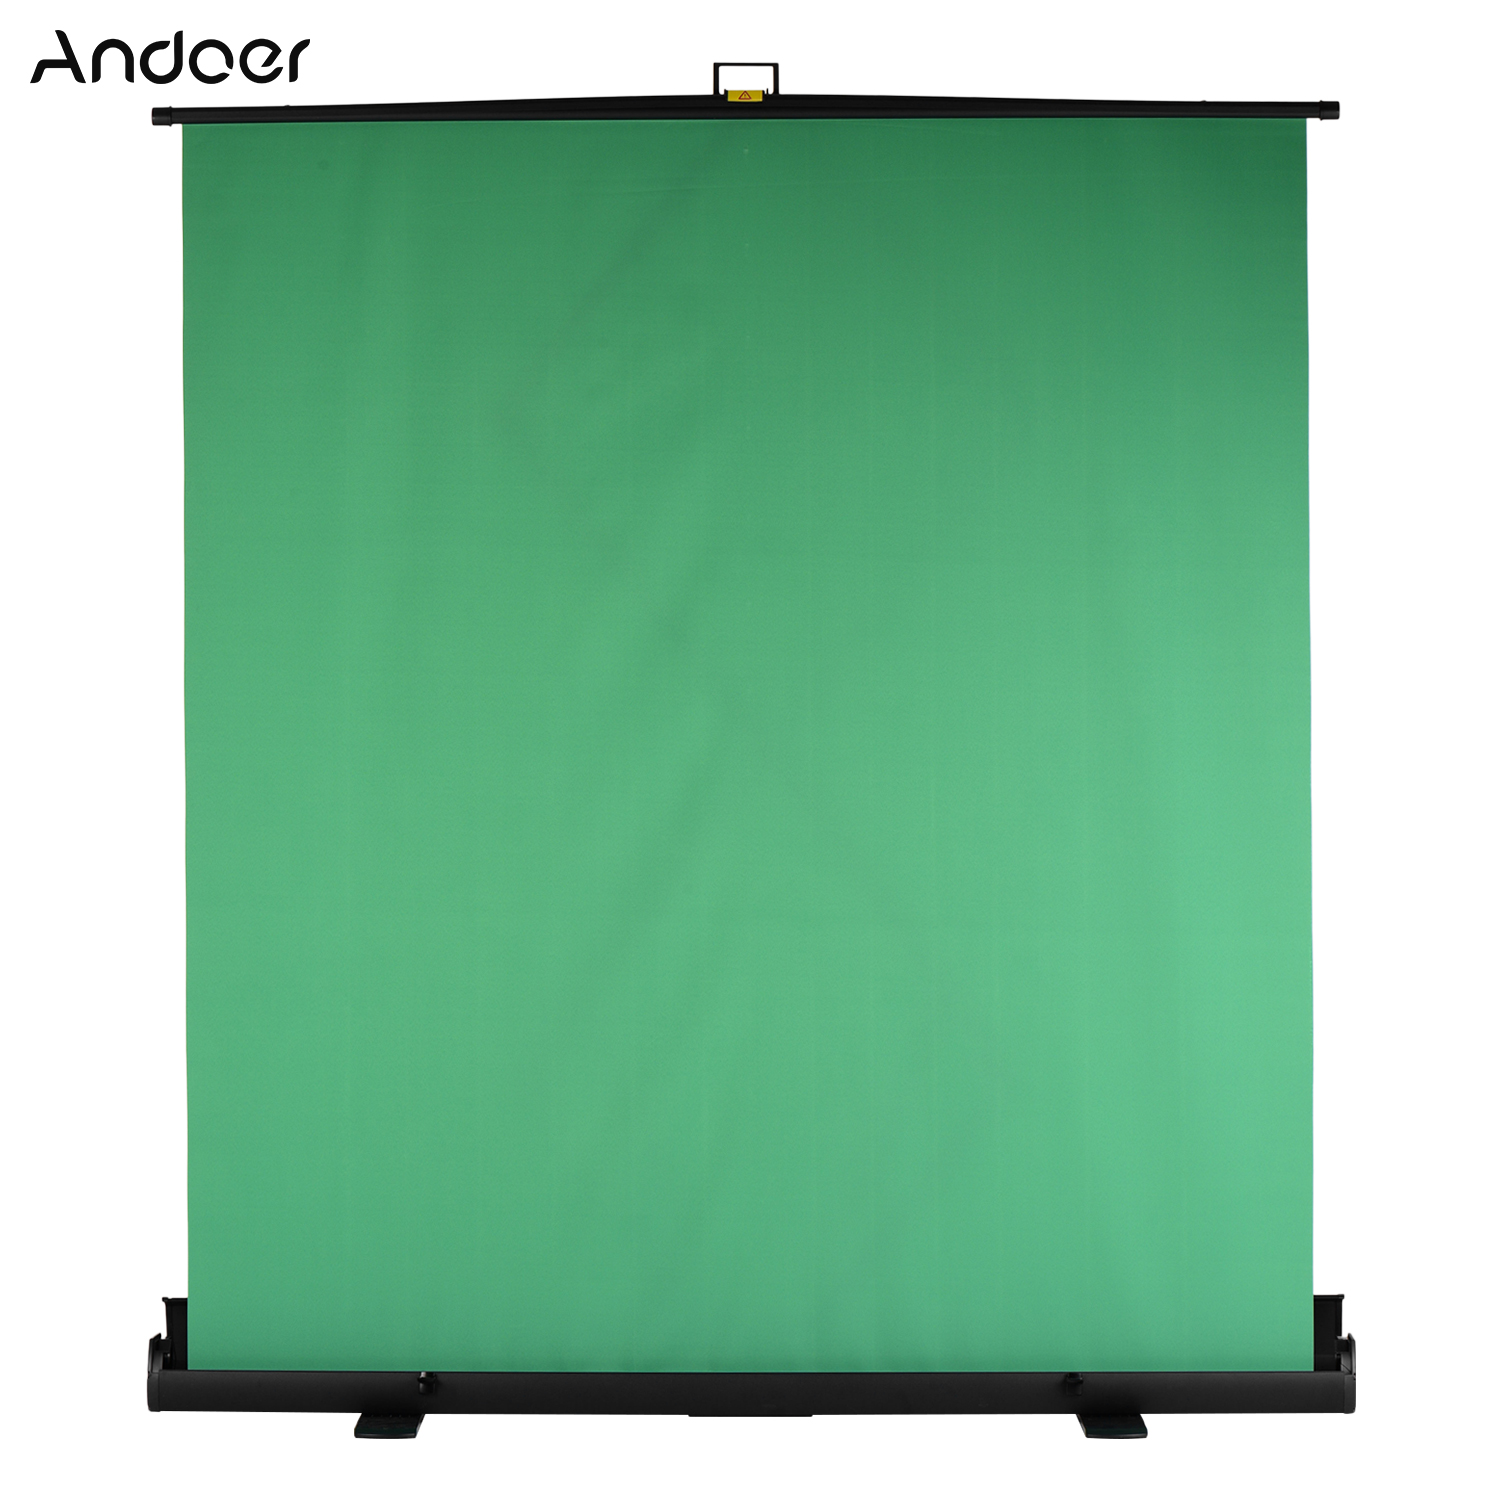 Andoer 200cm Height Collapsible Chromakey Background Pull-up Style Green Screen Backdrop for Photo Video Live Virtual Studio